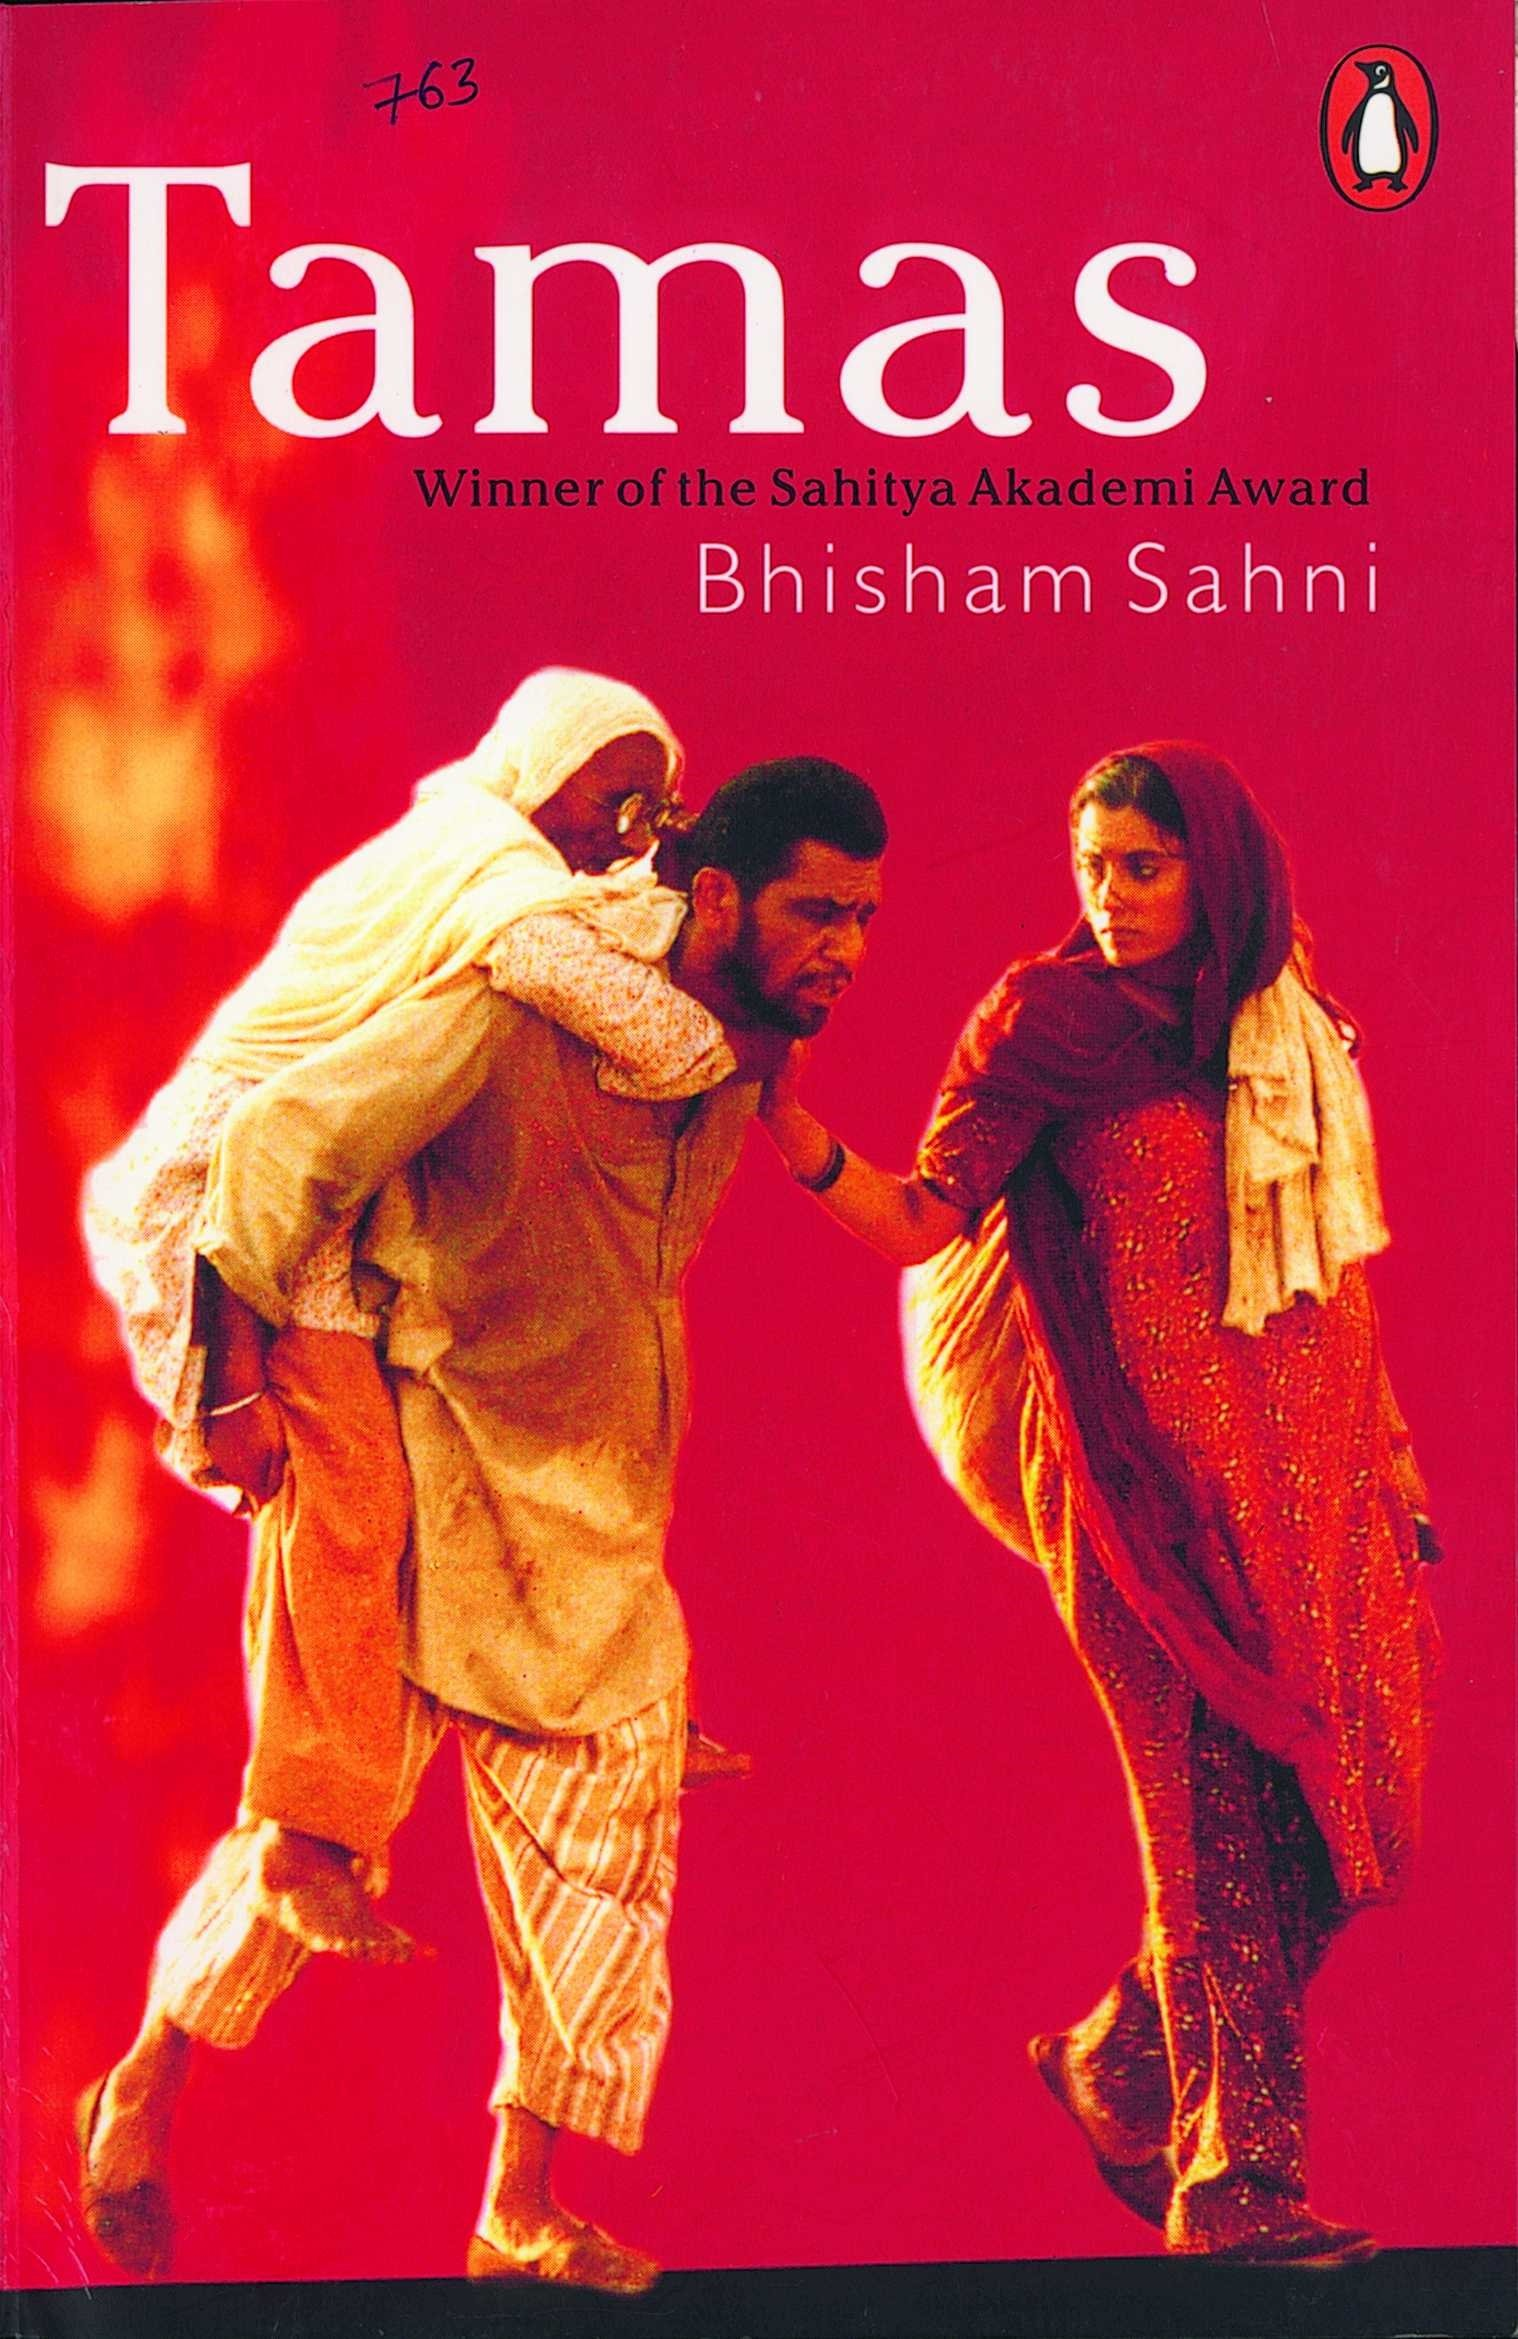 bhisham sahni tamas analysis Book: tamas author: bhisham sahni isbn13: 9780140290462 isbn10: 014029046x summary: the events described in tamas are based on true accounts of the riots of 1947 that sahni was a witness to in rawalpindi, and this new and sensitive translation by the author himself resurrects.